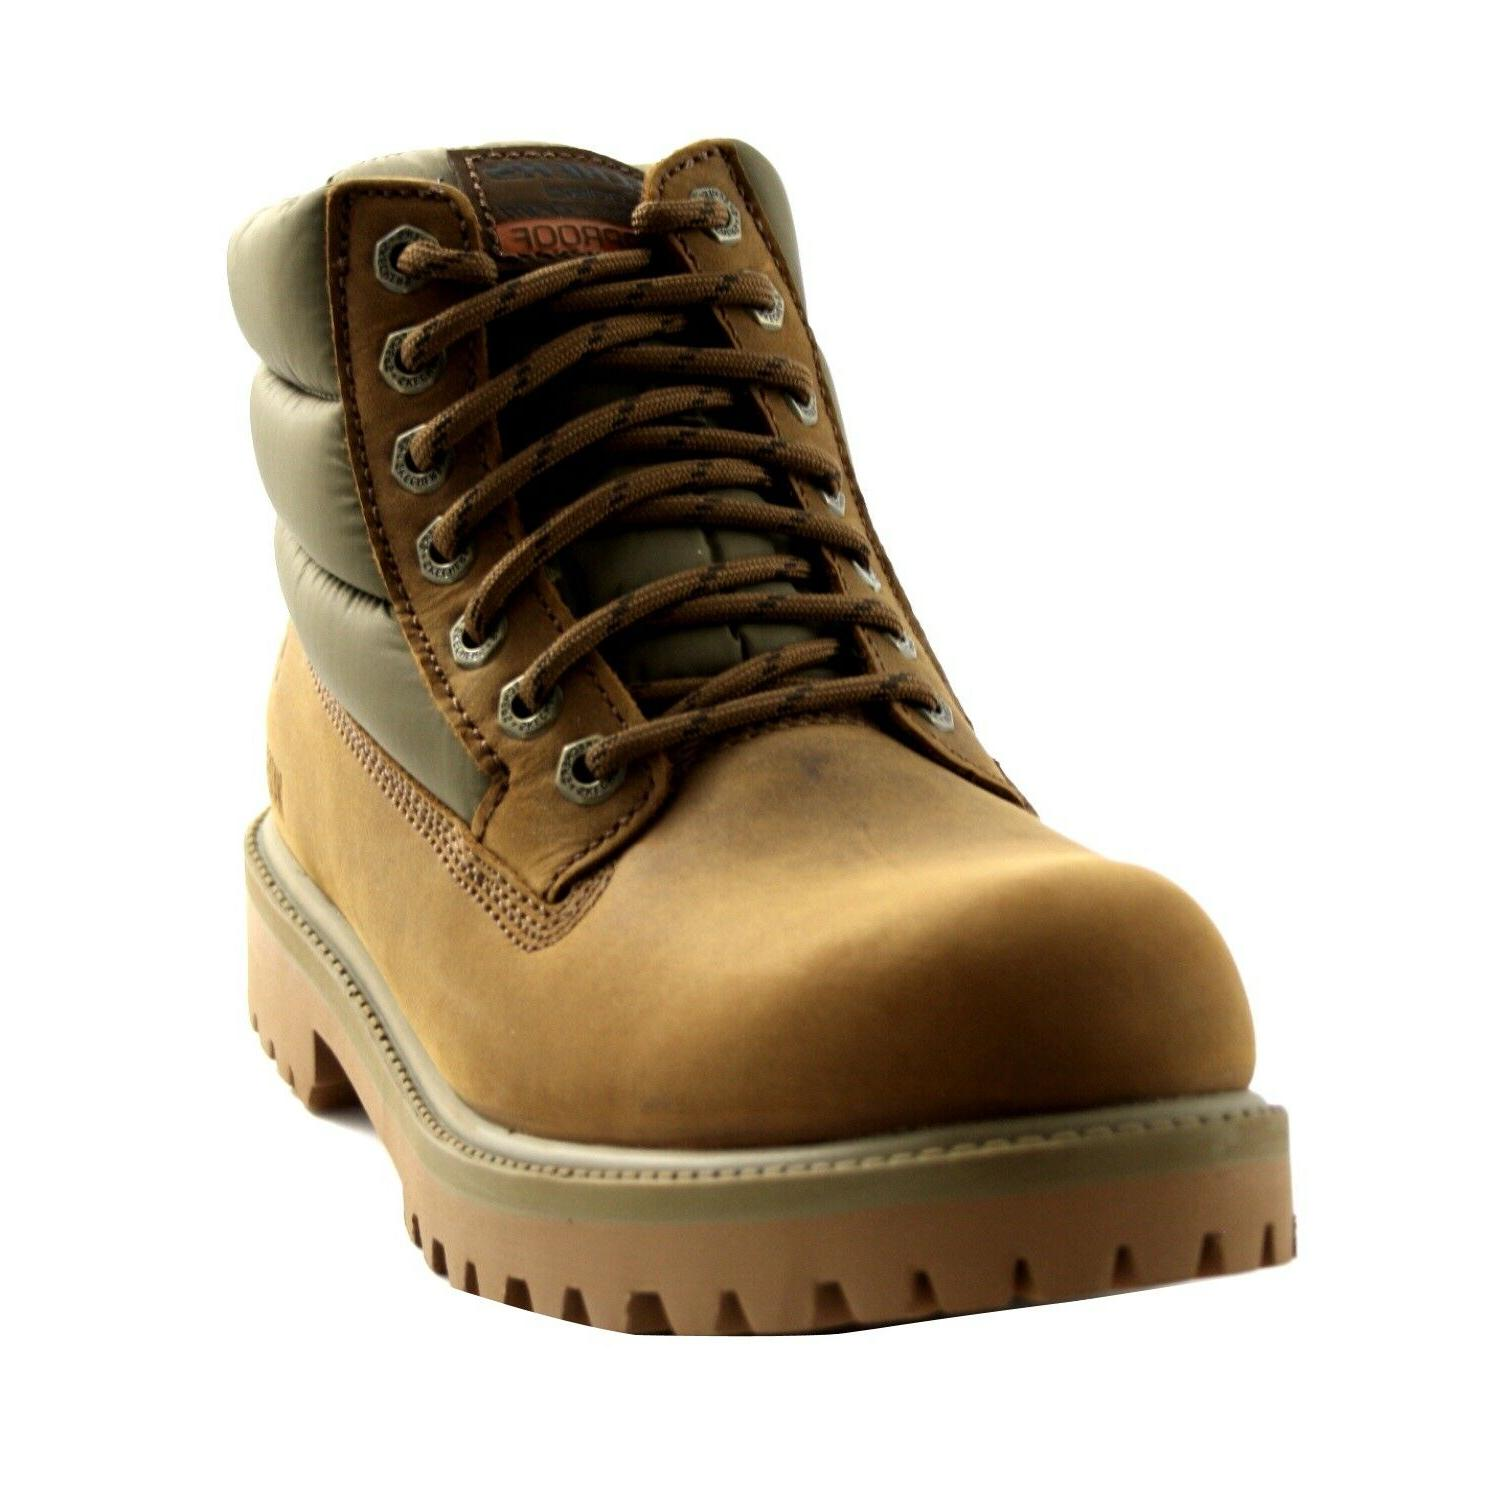 Boots Leather Brown Memory Foam Upturn